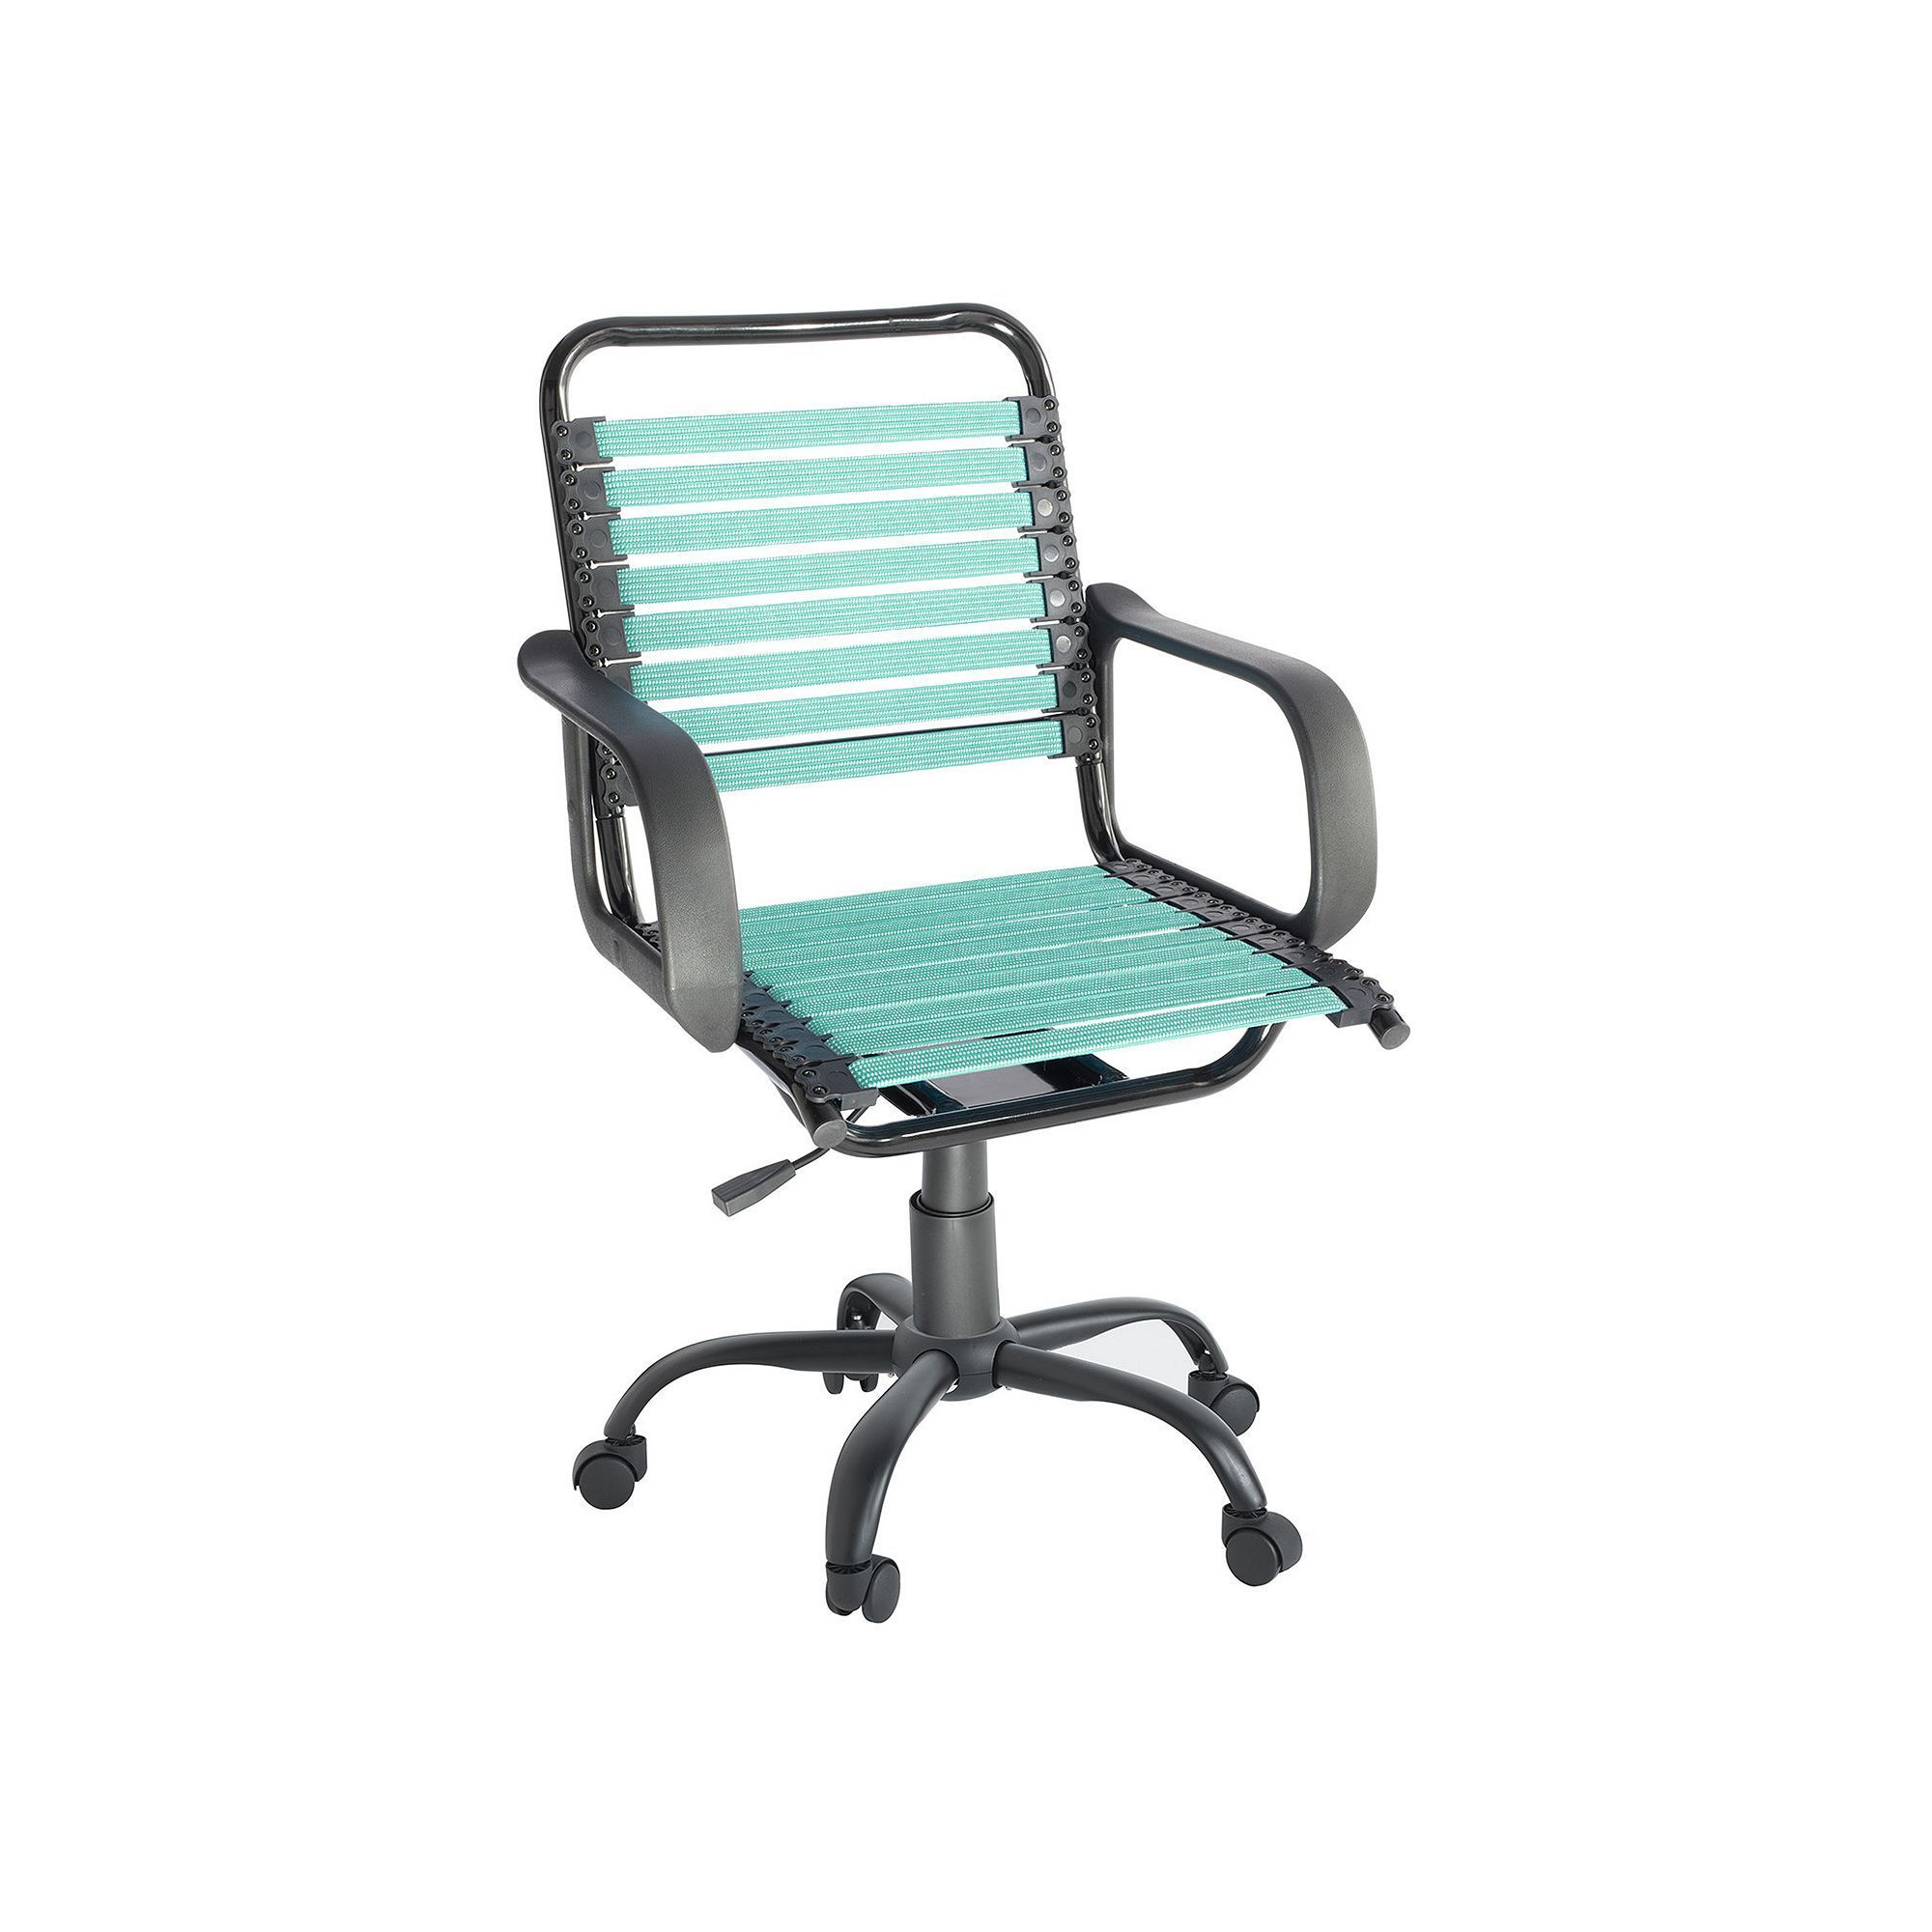 Simple By Design Bungee Desk Chair Turquoiseblue Turqaqua